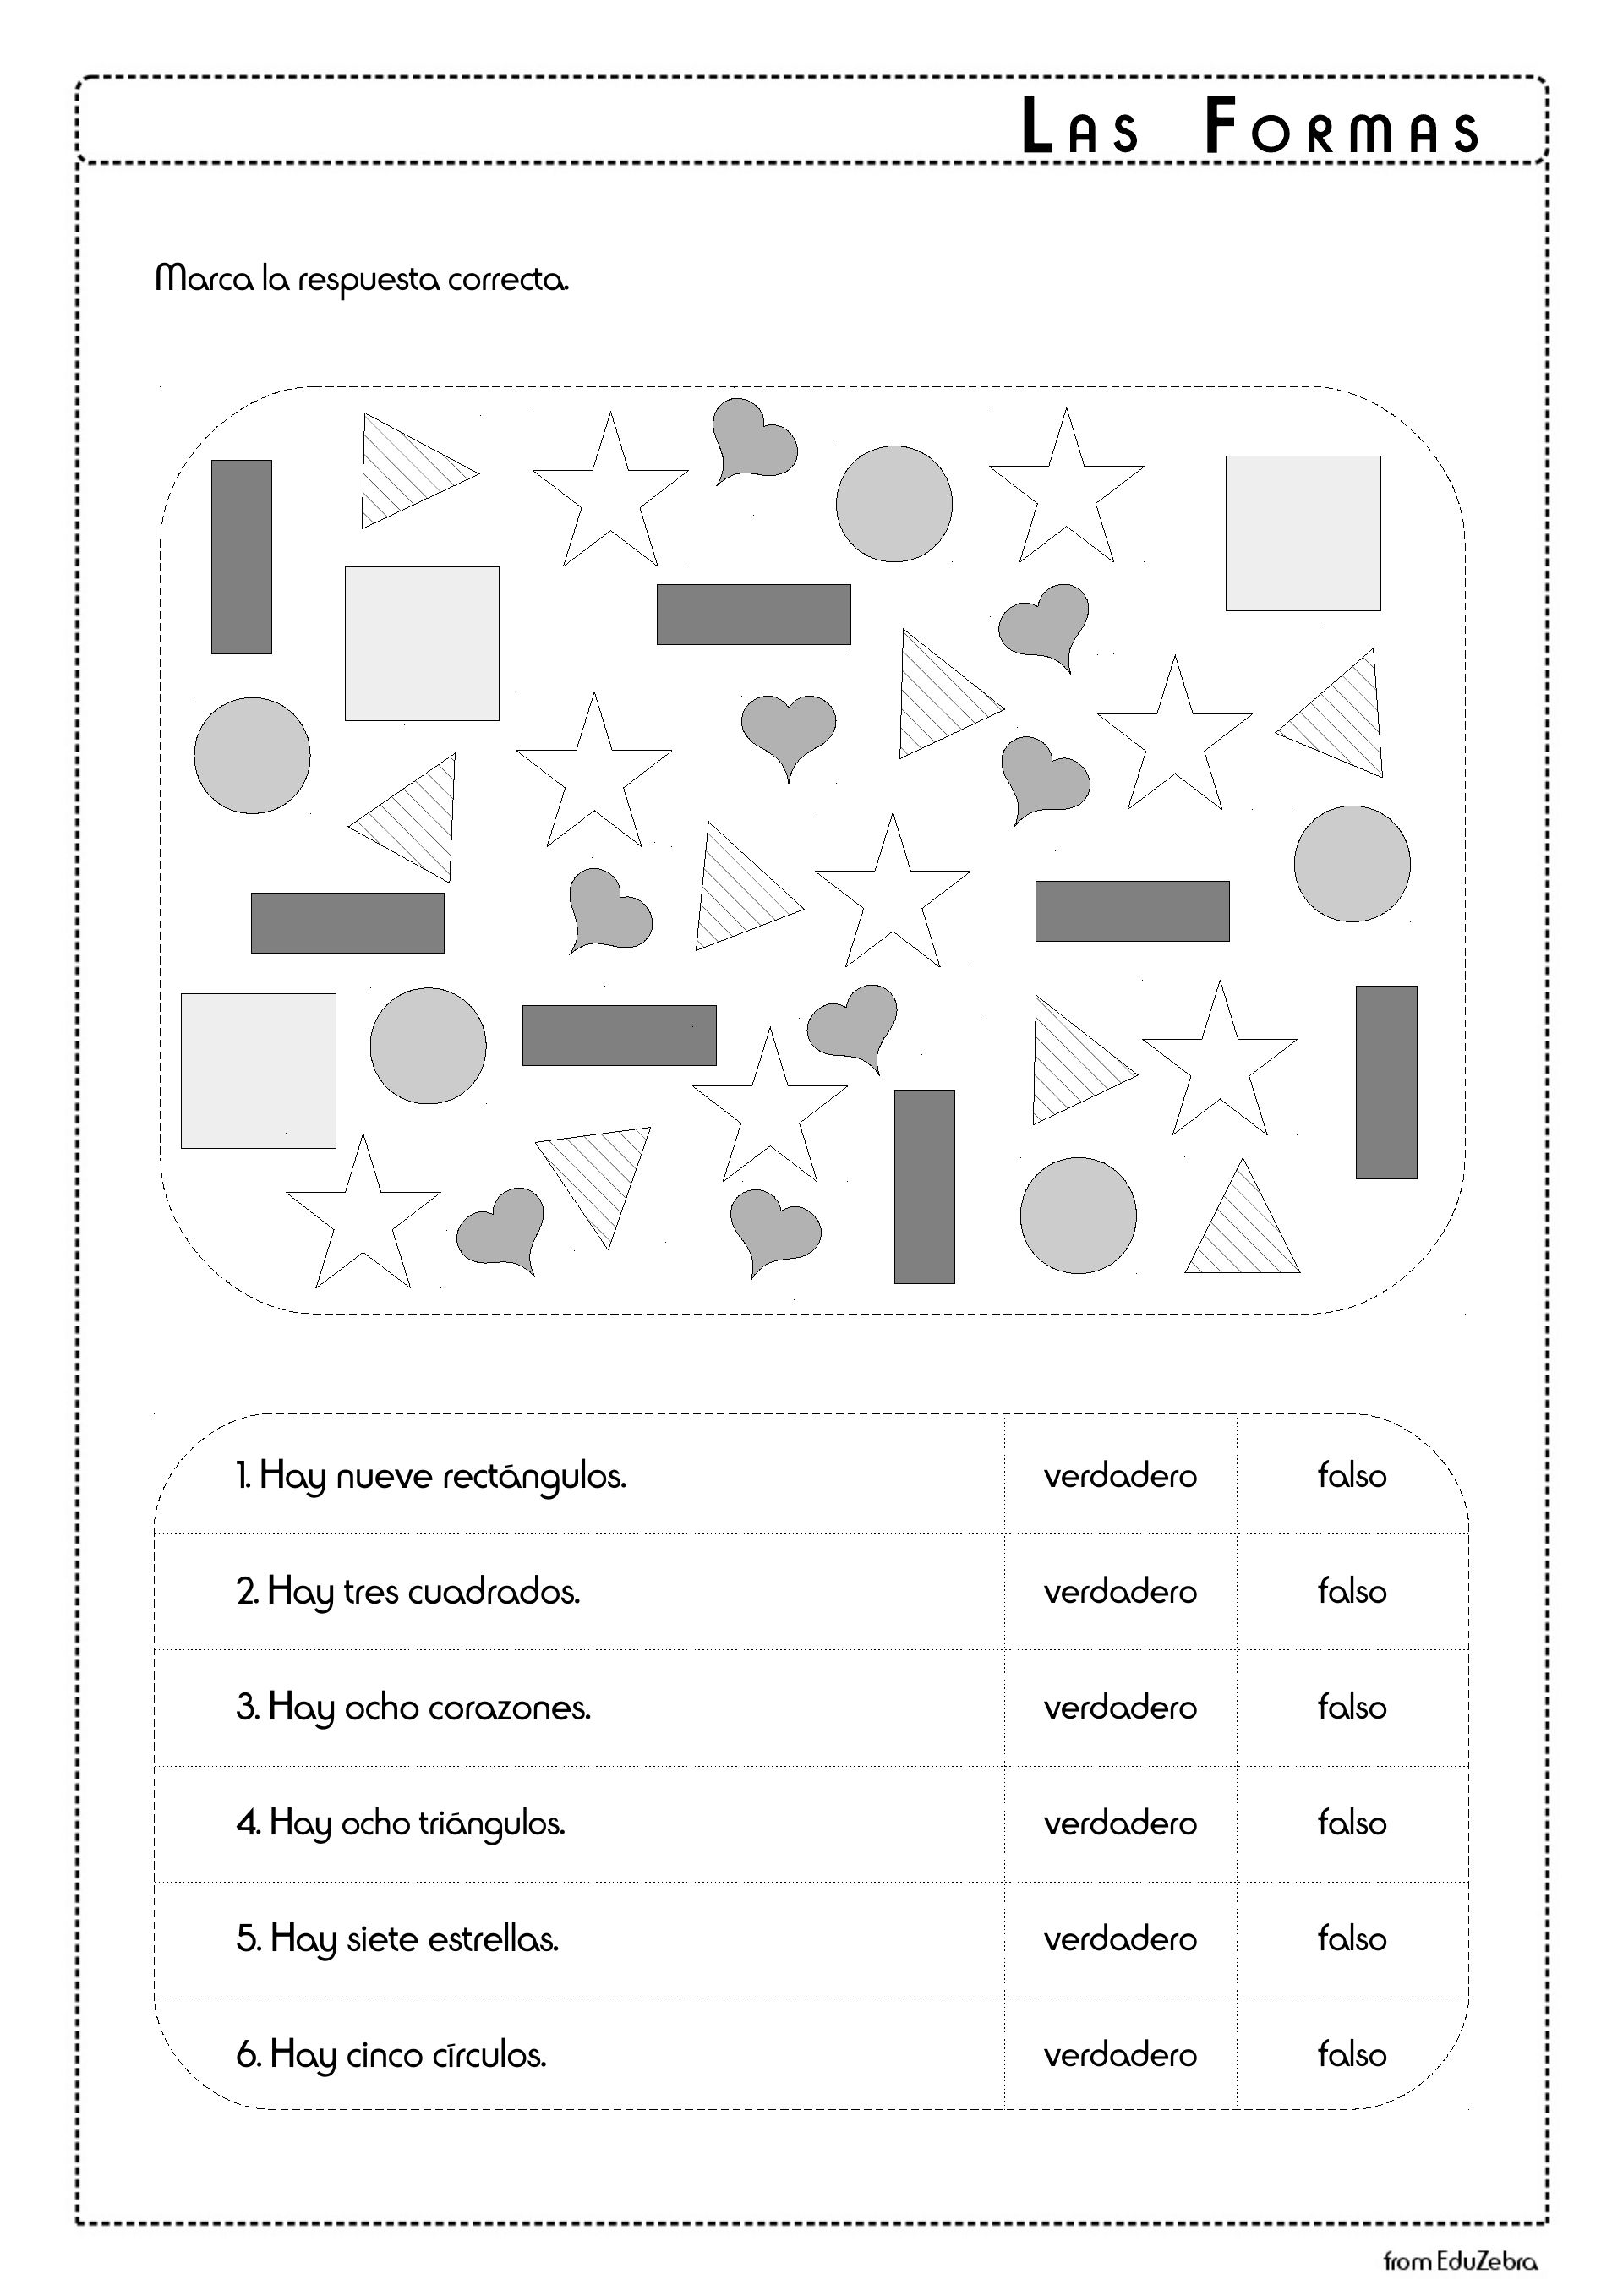 Las Formas Espanol Ninos Actividades Shapes In Spanish For Kids Worksheet Shapes In Spanish Activity Pack Shapes Activities